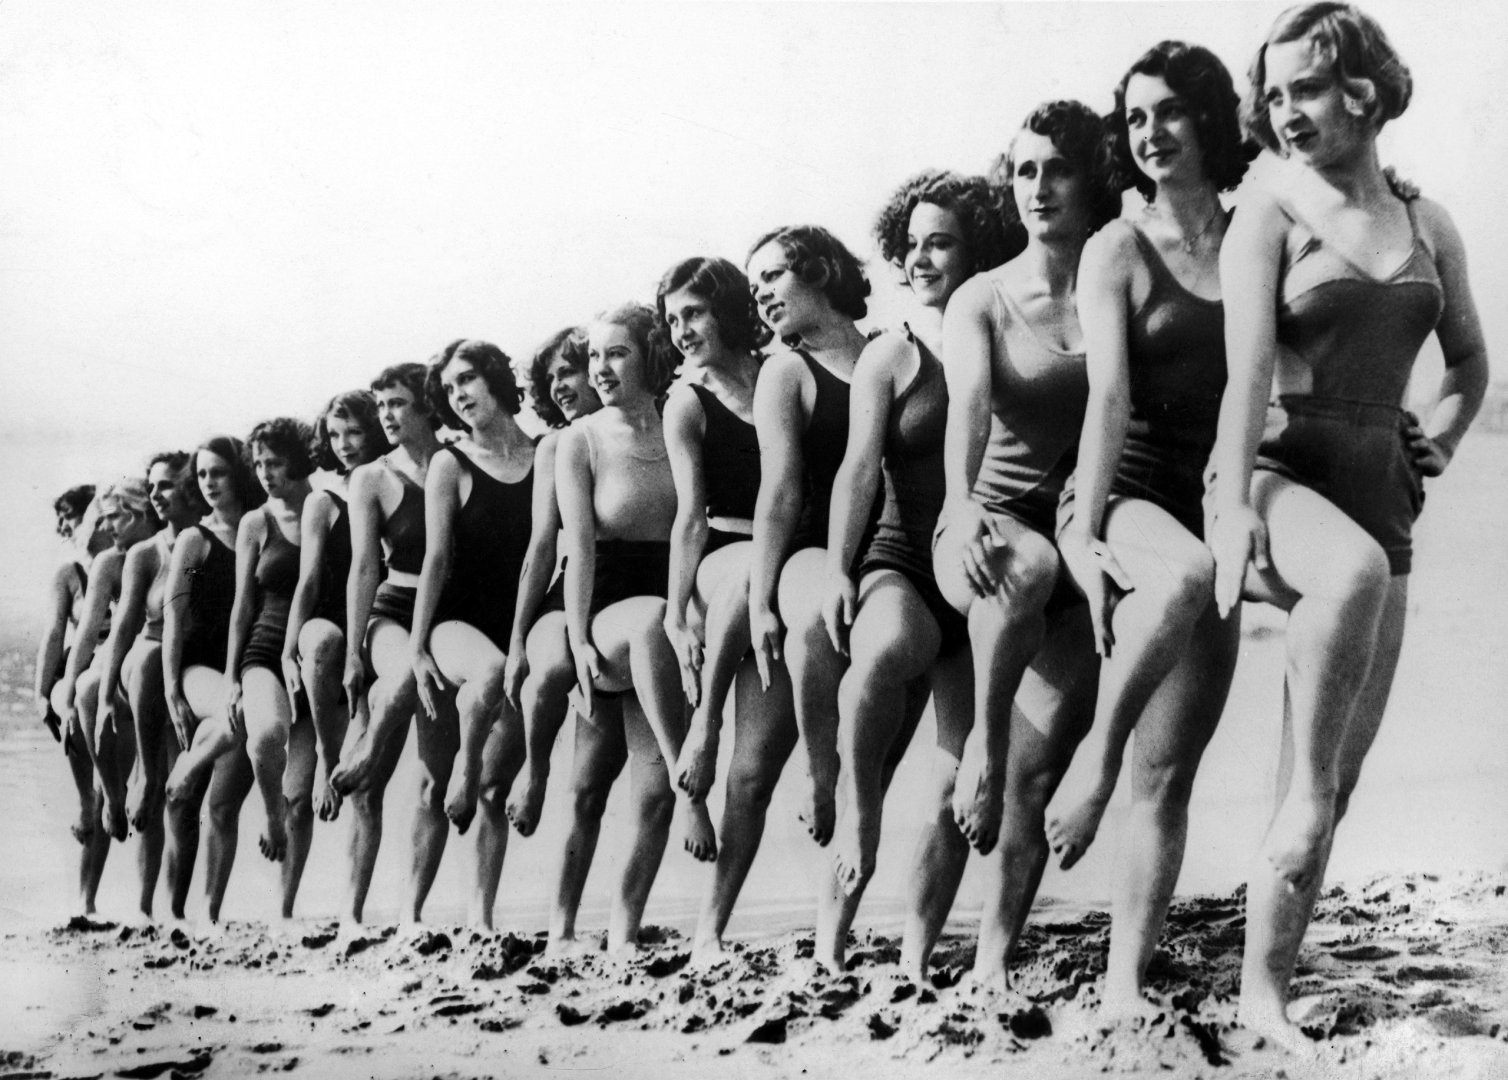 UNITED STATES - APRIL 21: Gorgeous Bathers With The Latest In Swimwear On A Beach In California, April 21, 1934. (Photo by Keystone-France/Gamma-Keystone via Getty Images) - thechicflaneuse